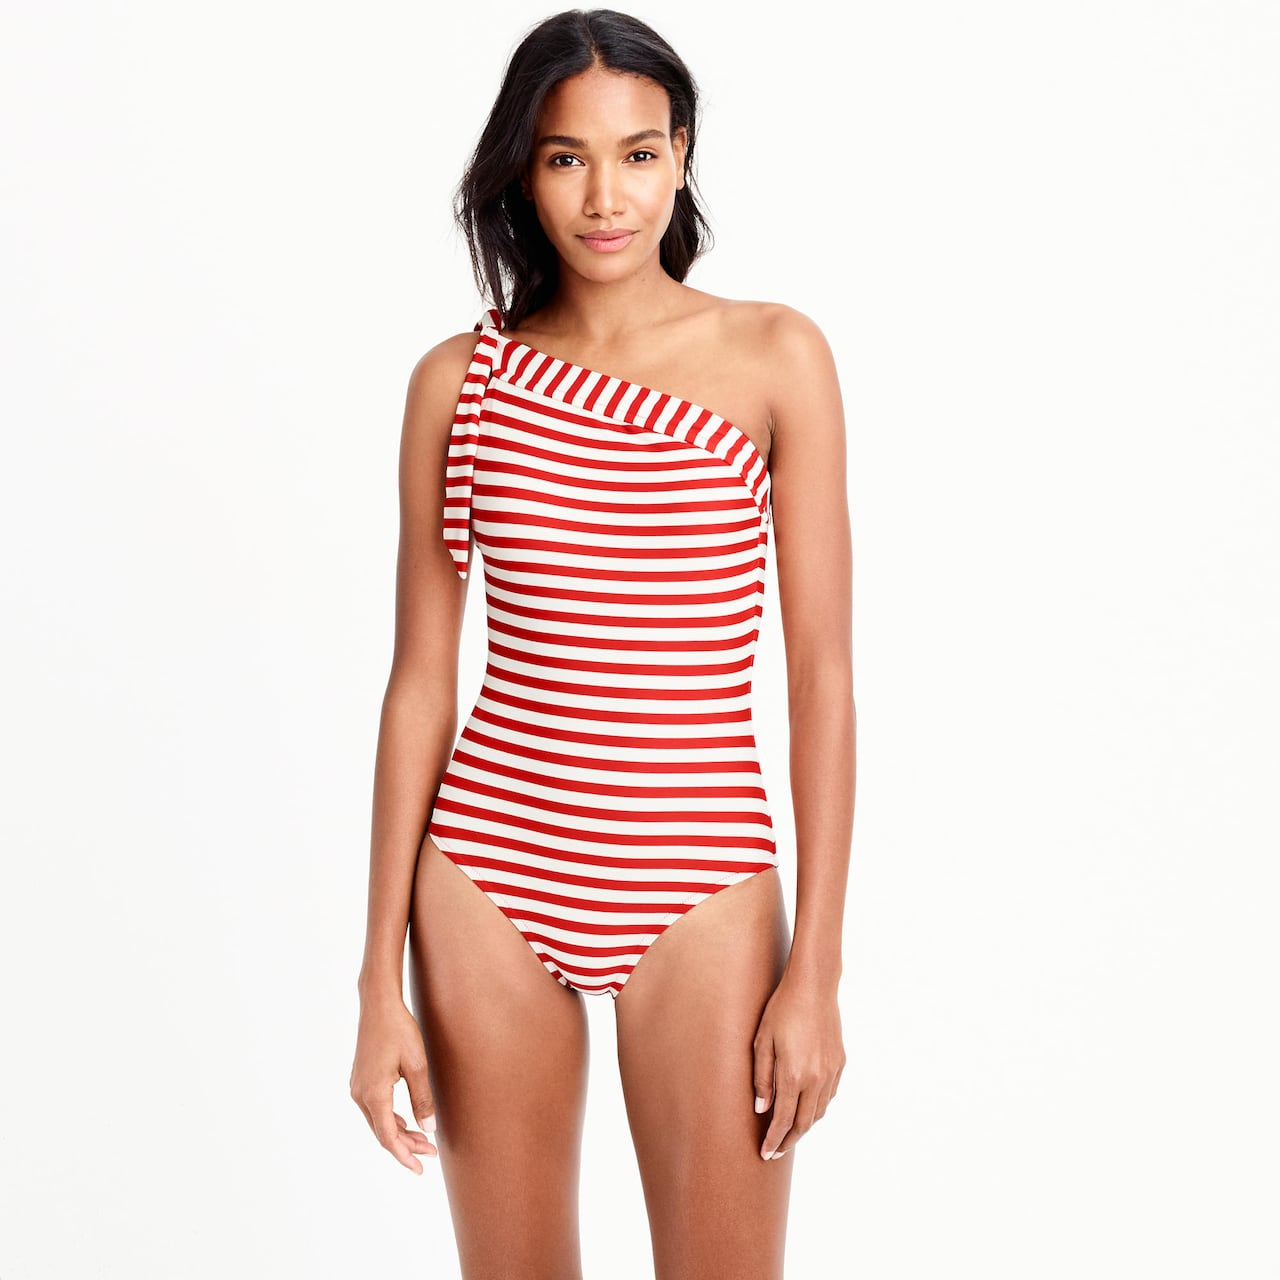 fc24ca7ac3 10 flattering, fuller-coverage one piece swimsuits | CBC Life